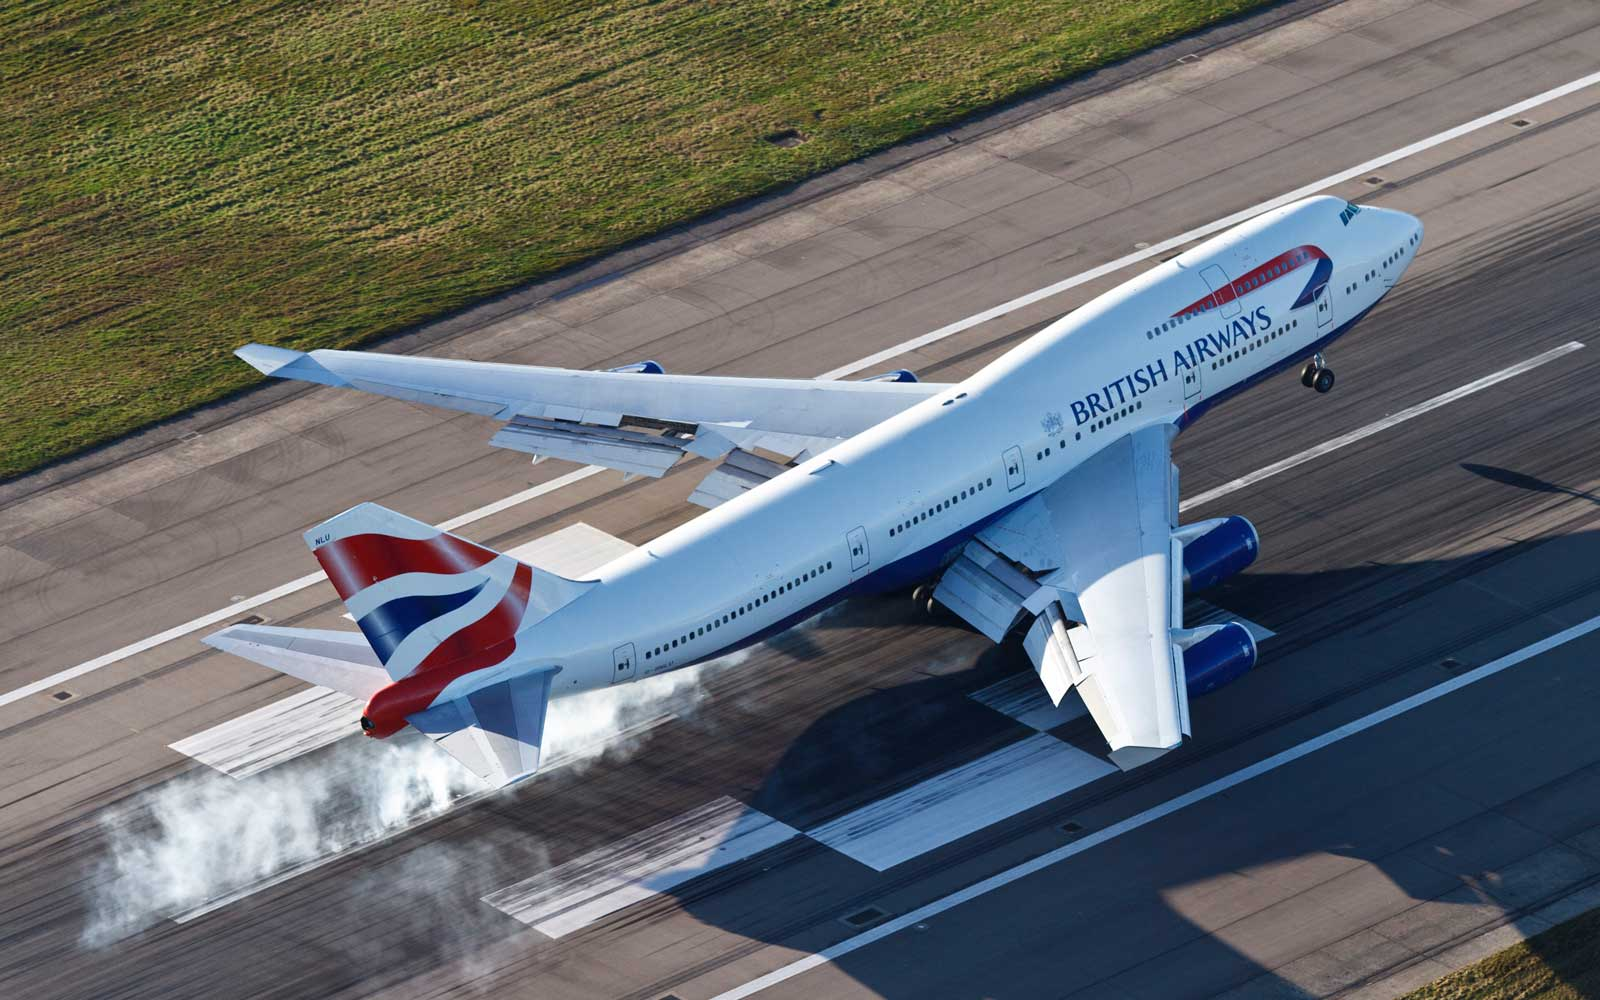 British Airways Landing Gears Failure At Heathrow